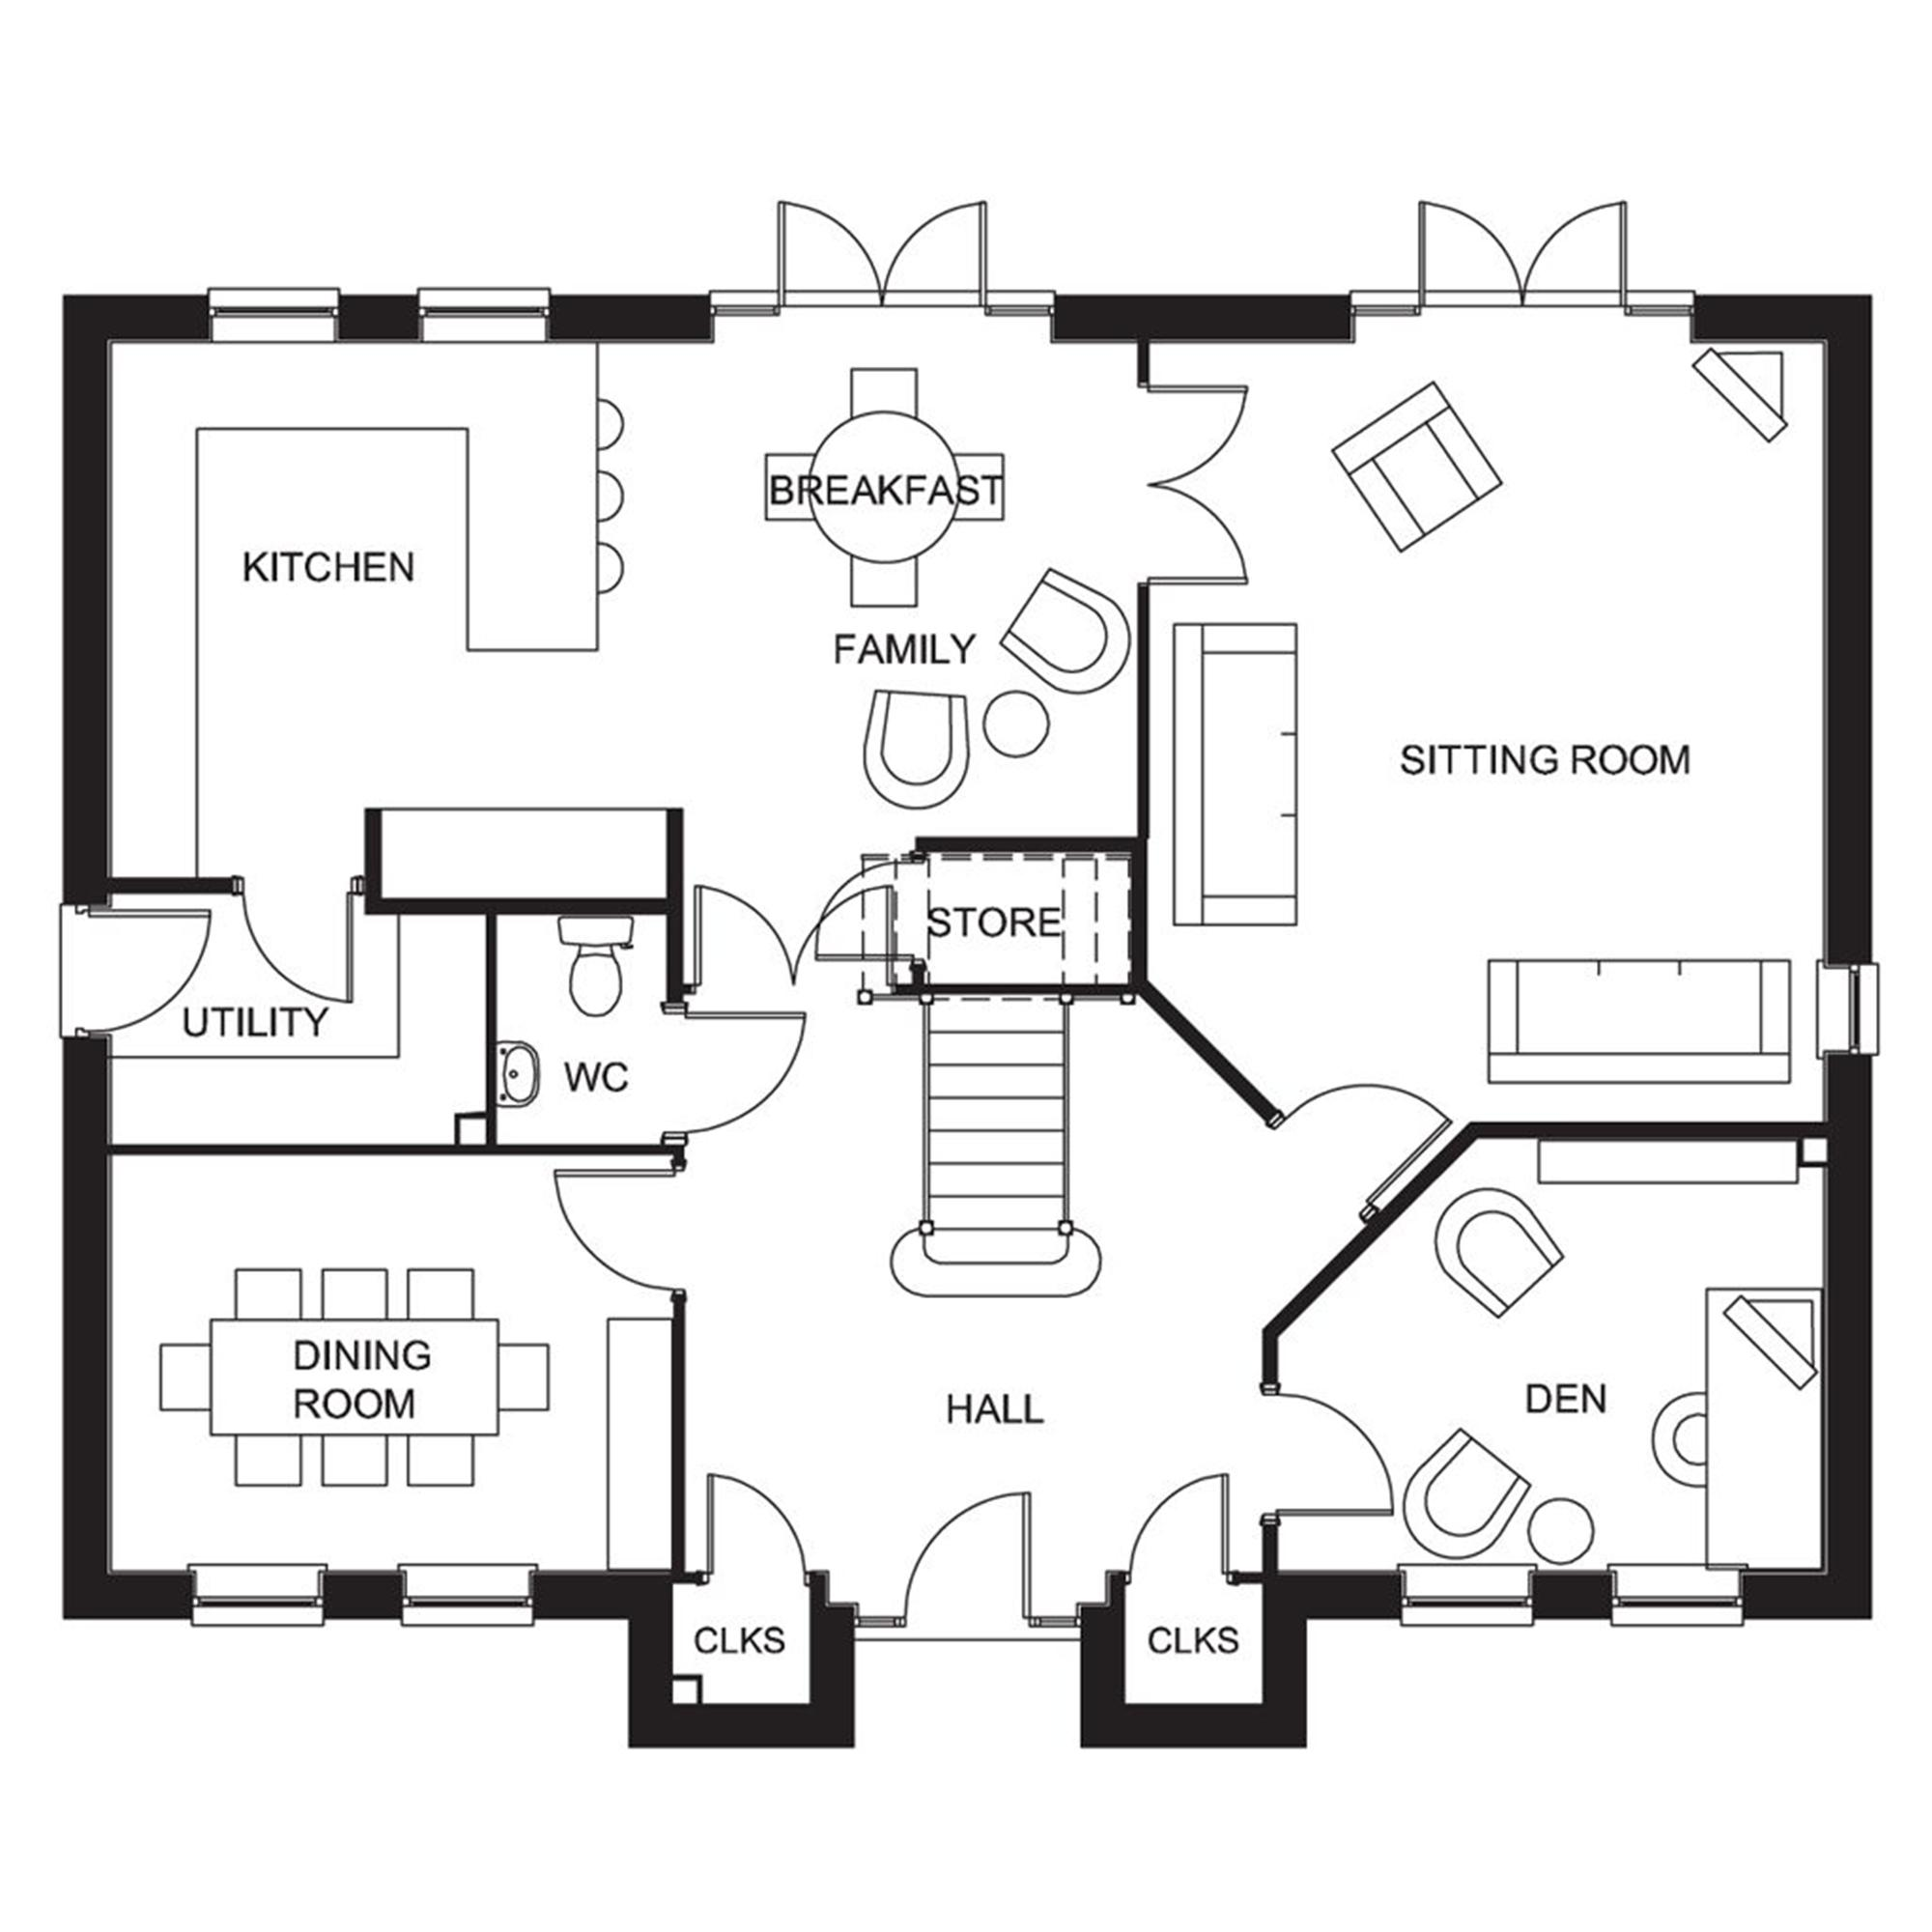 wilson homes floor plans homes home plans ideas picture david wilson homes emerson floor plan